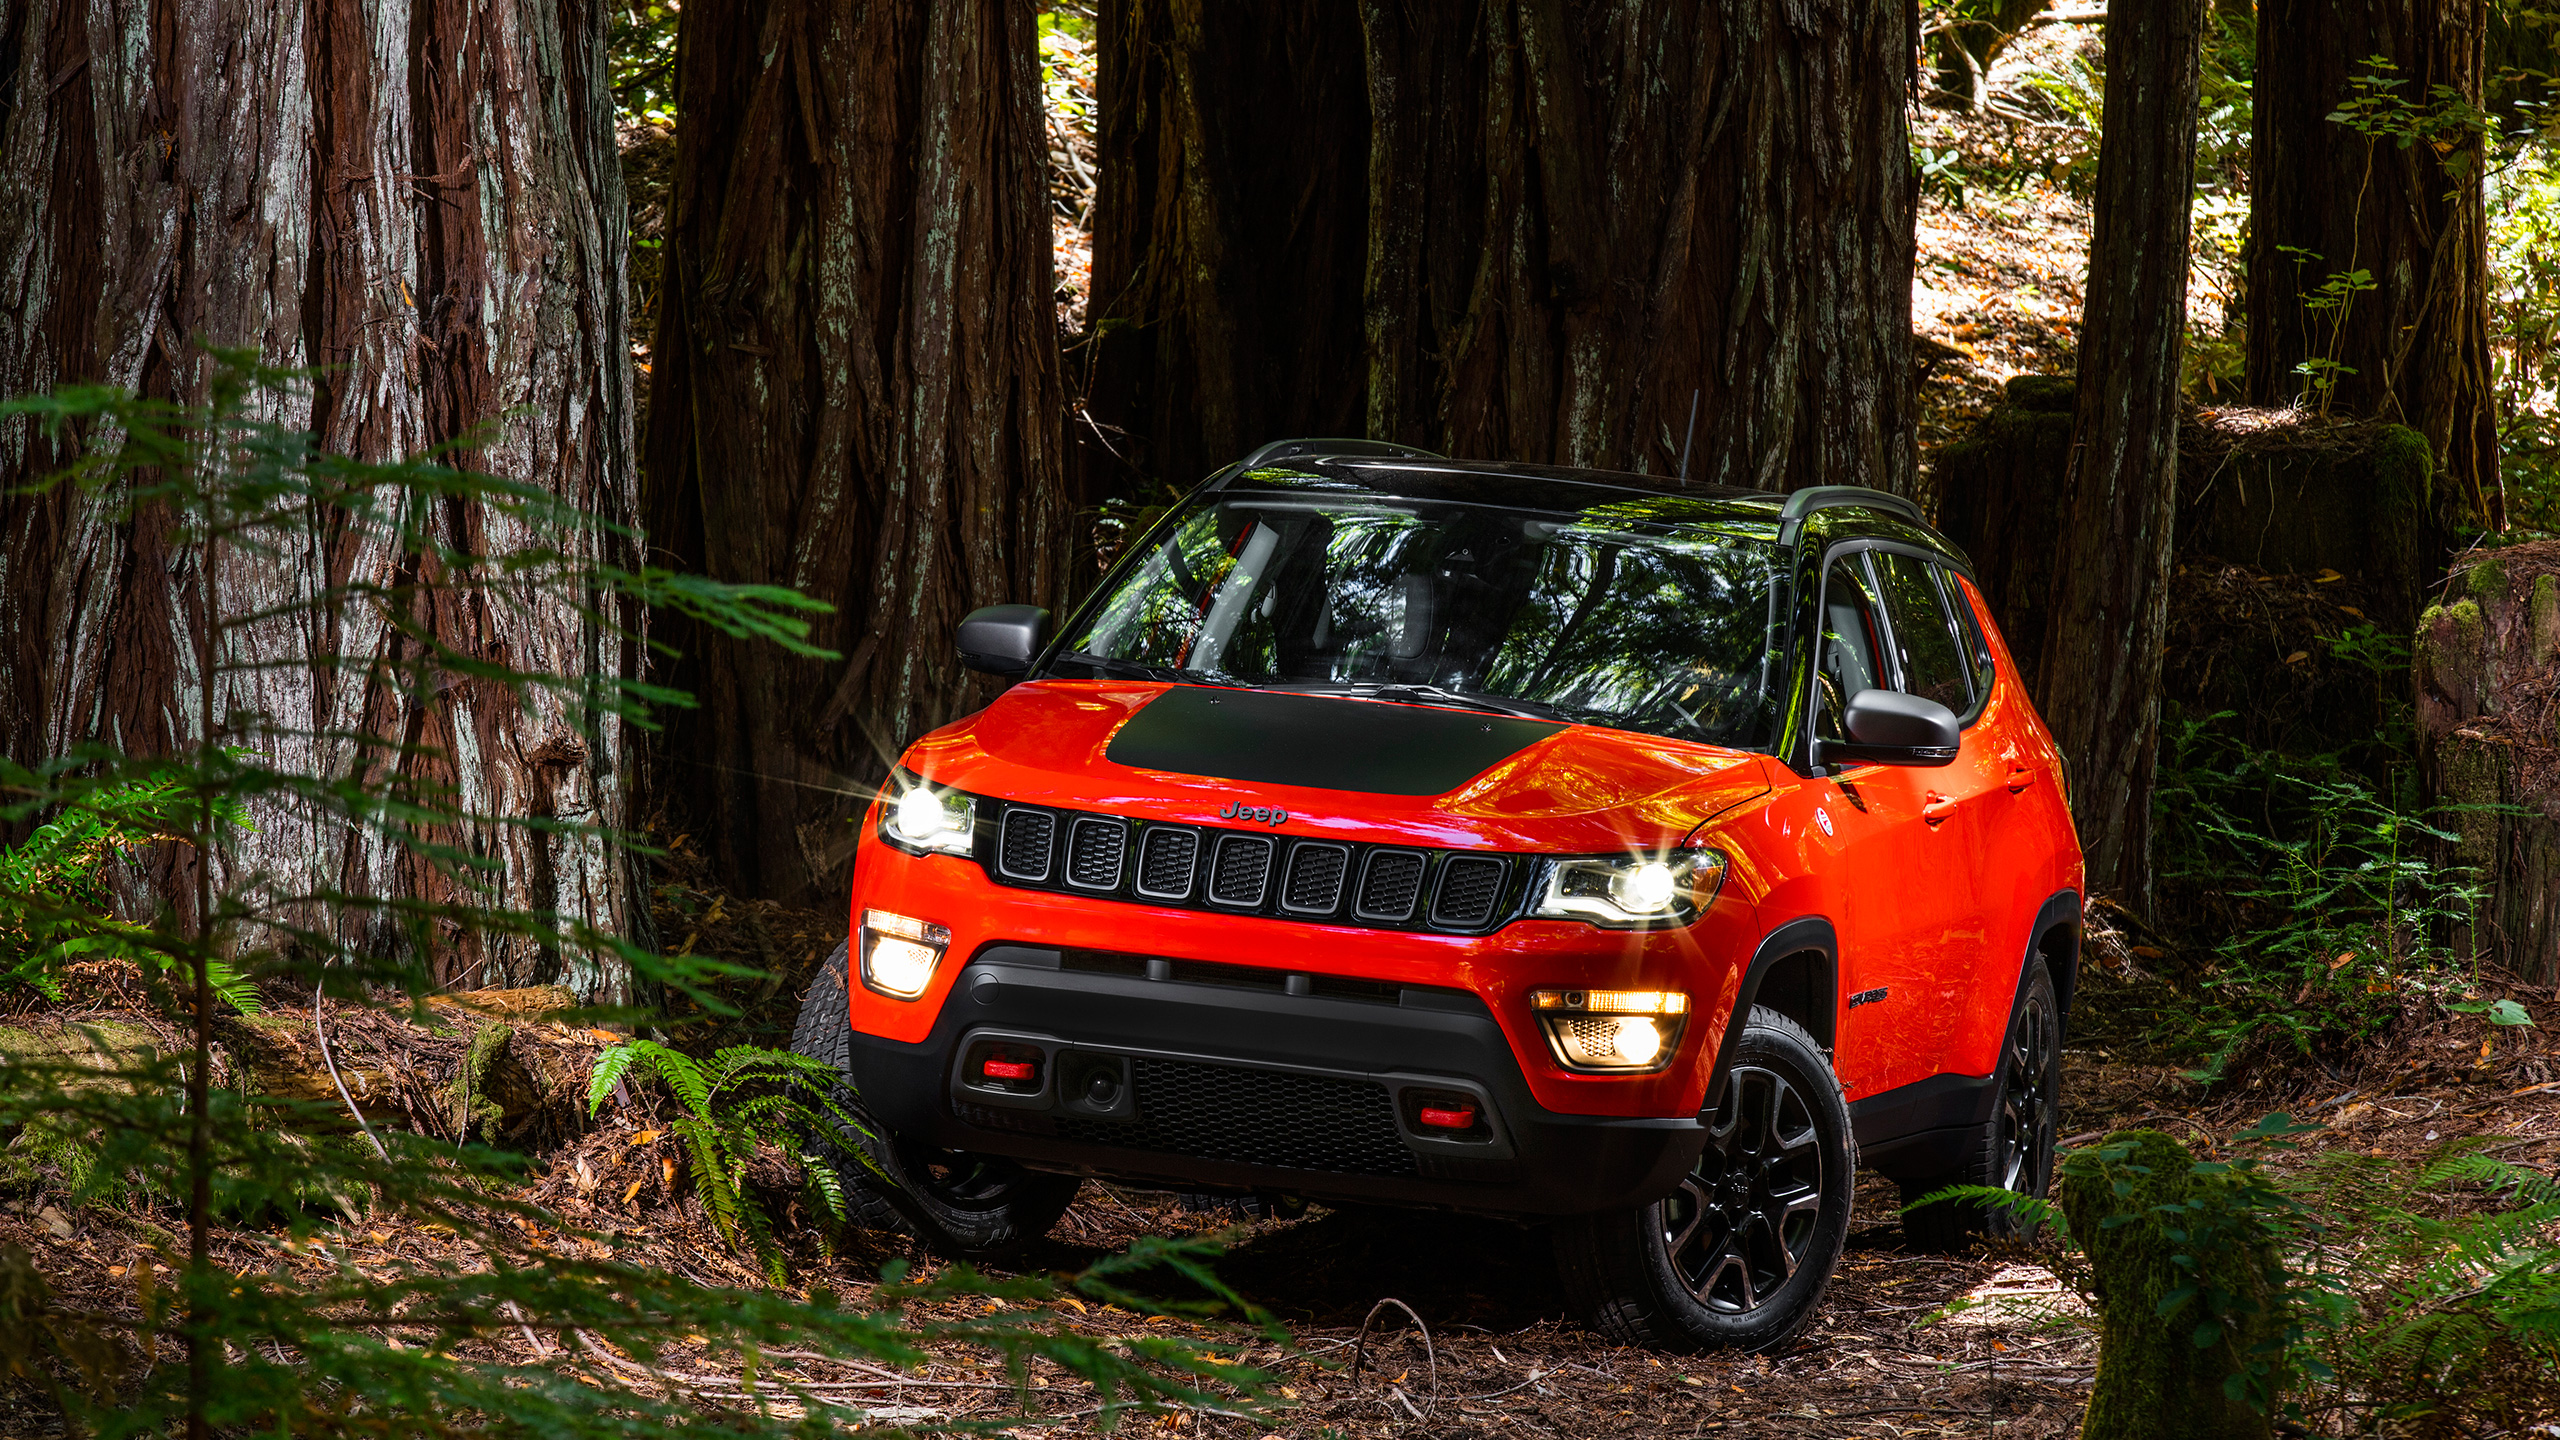 Jeep 4k Wallpapers For Your Desktop Or Mobile Screen Free